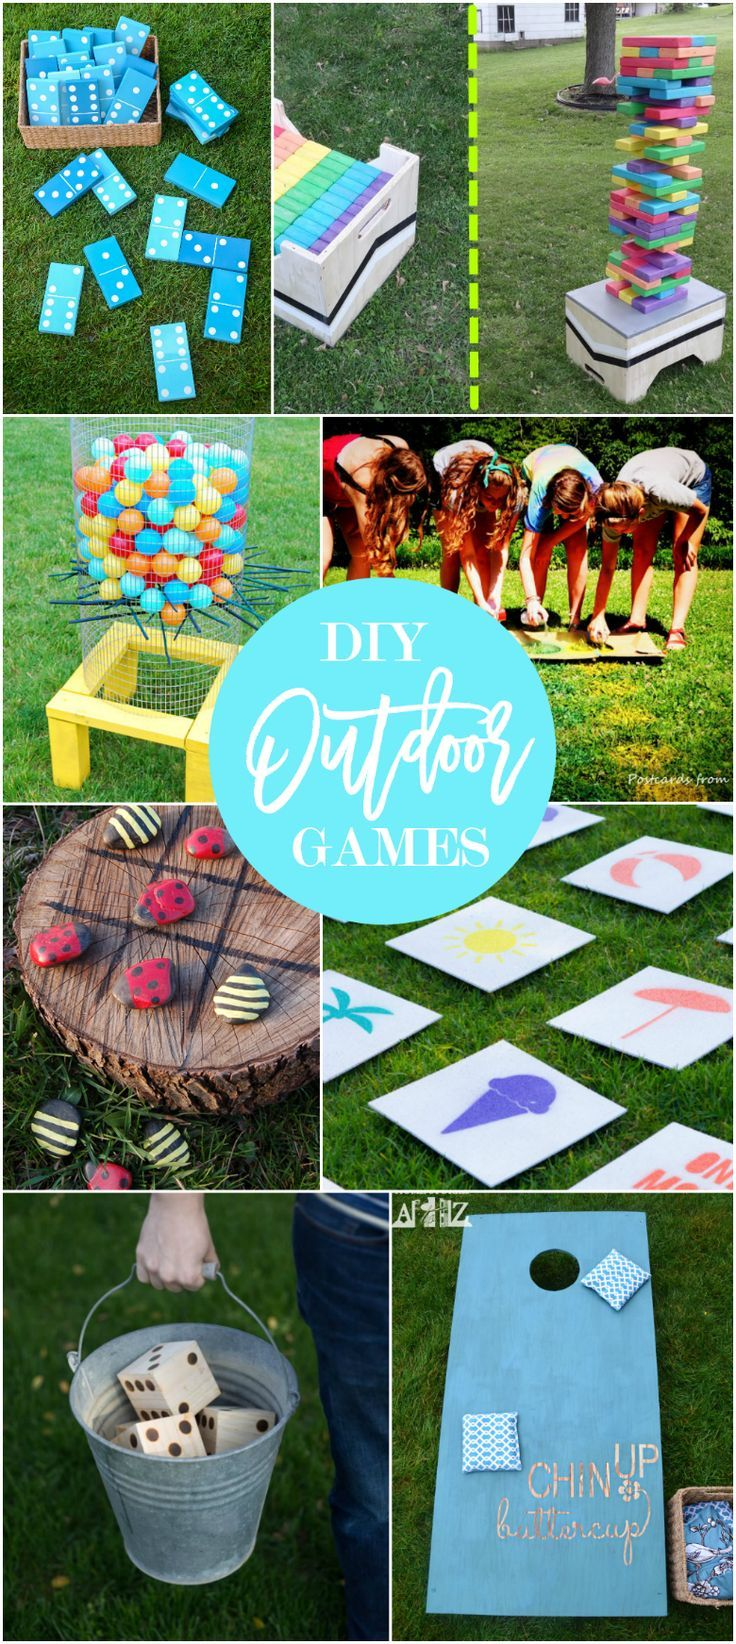 17 DIY games for outdoor family fun backyard game tutorials #DIY #Home #Garden #doityourself #instruction #instuctions #building #design #designs #instruction #idea #ideas #hobby